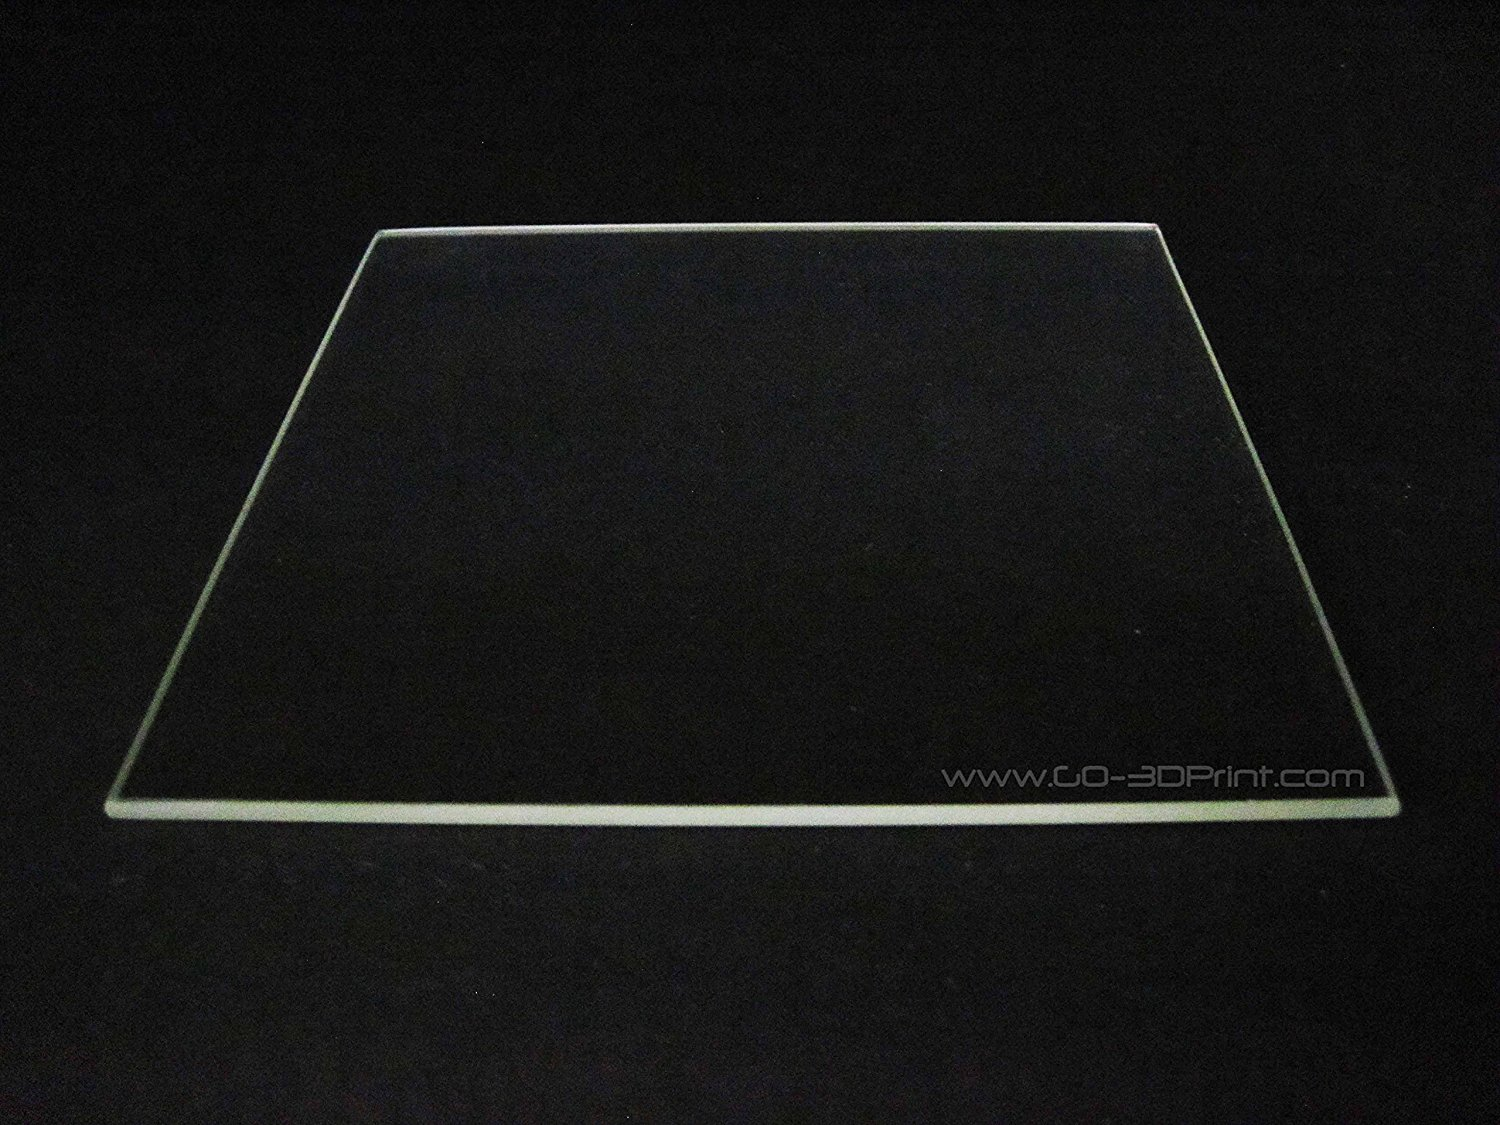 130mm x 130mm 5 125 quot x 5 125 quot Borosilicate Glass Plate Bed with Flat Polished Edge for 3D Printer in 3D Printer Parts amp Accessories from Computer amp Office